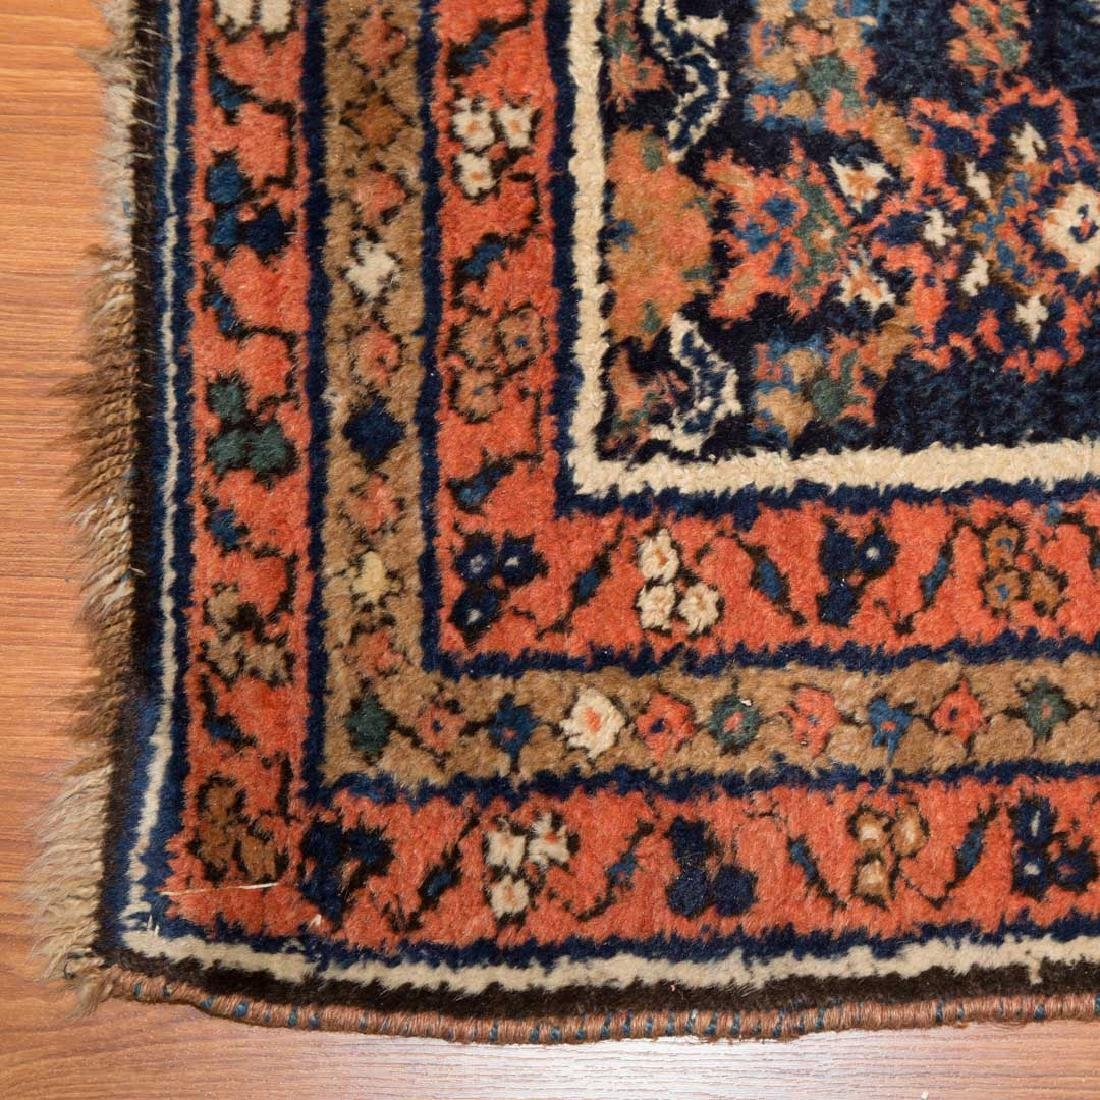 Northwest Persian rug, approx. 3.7 x 7 - 2